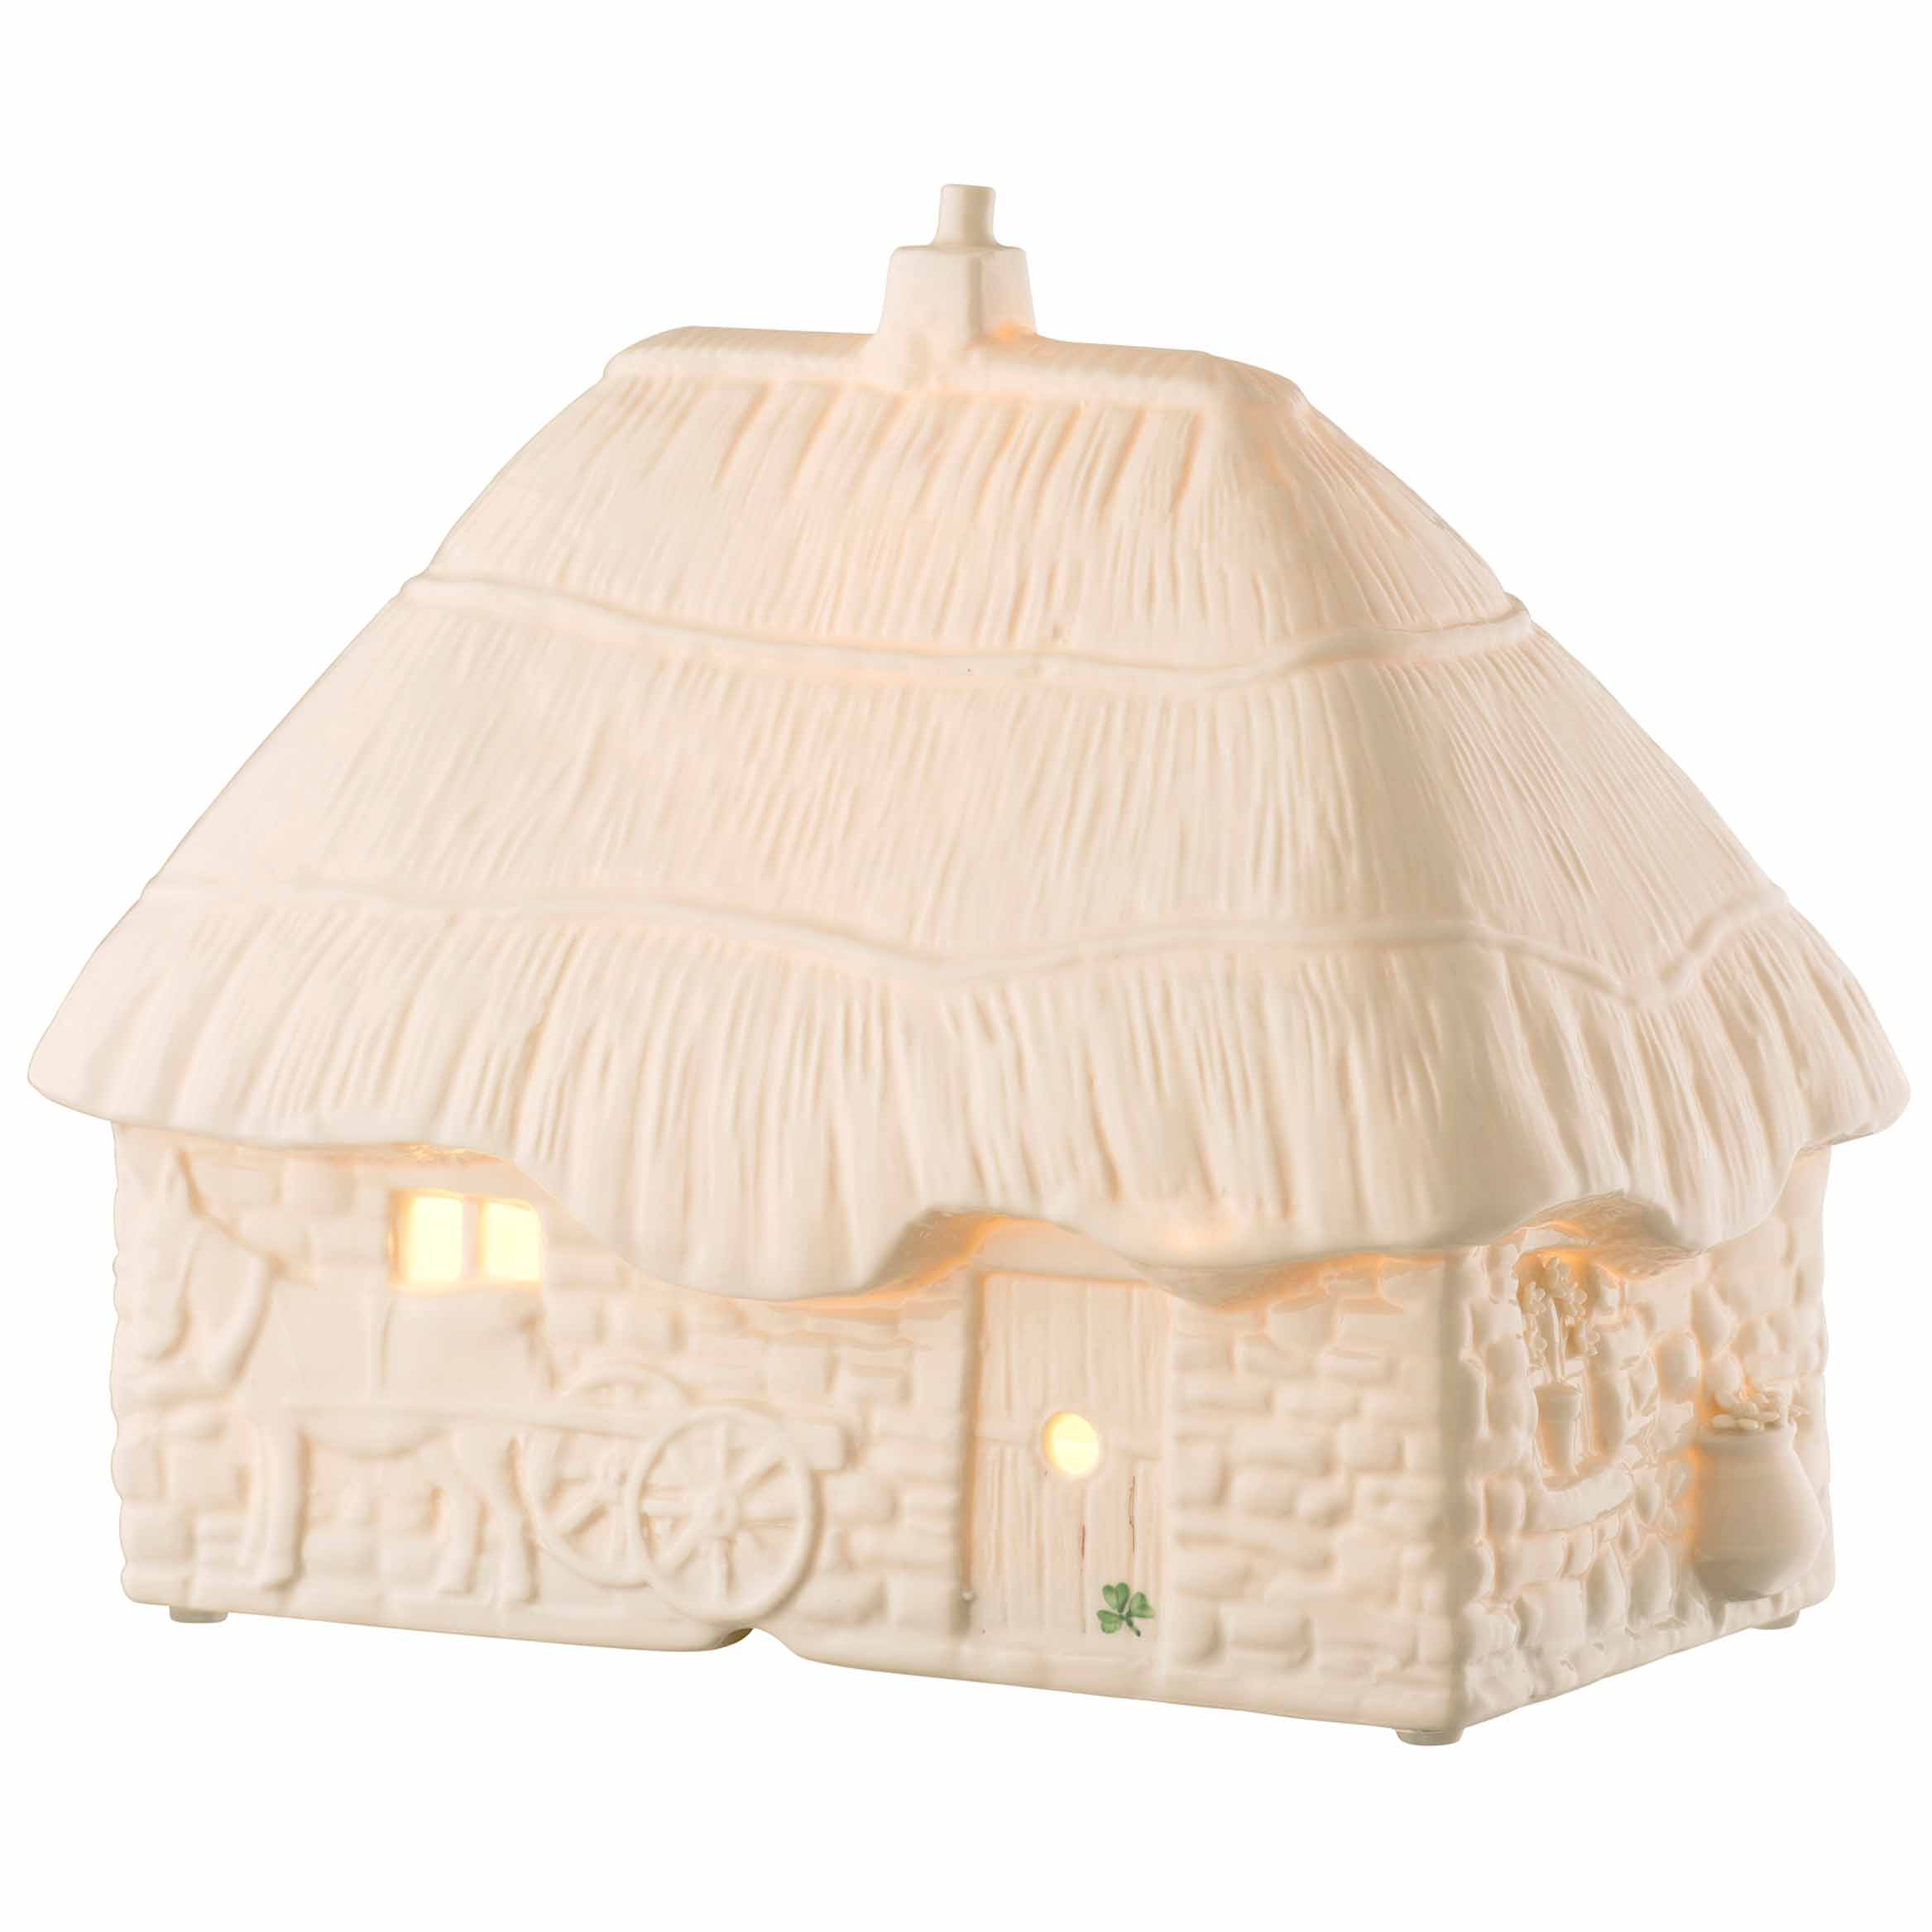 Belleek Pottery | Thatched Cottage Luminaire